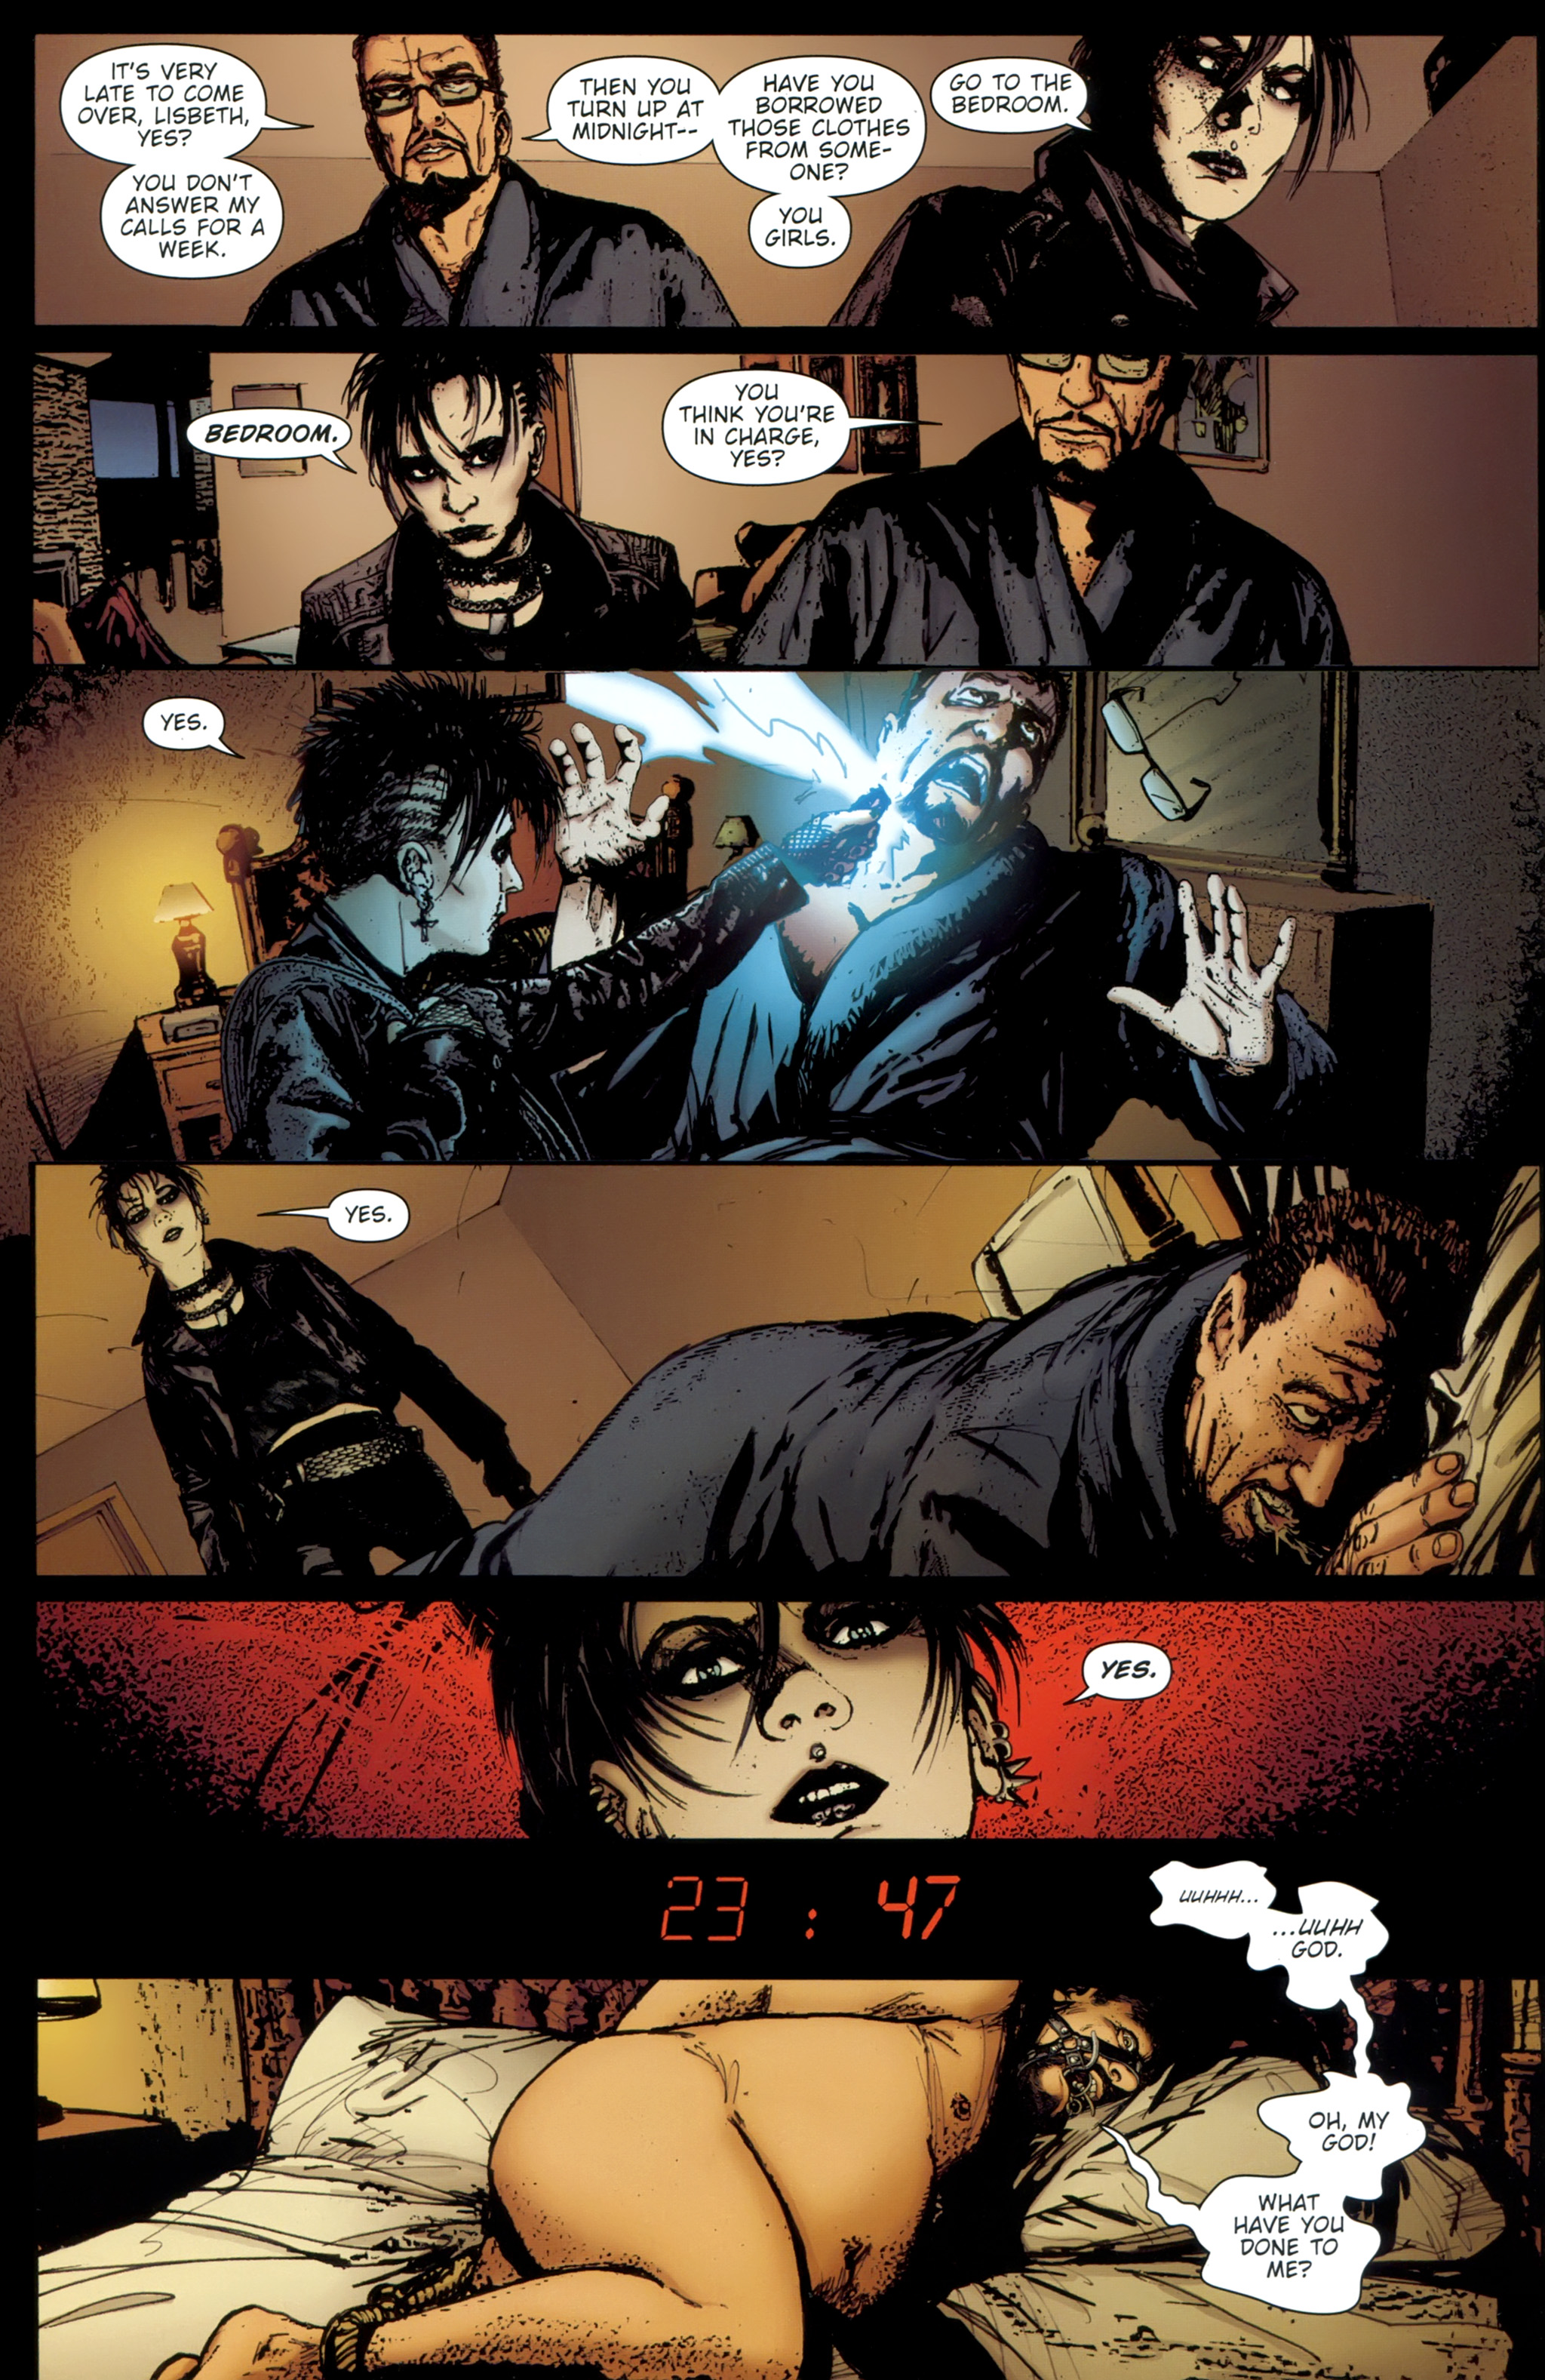 Read online The Girl With the Dragon Tattoo comic -  Issue # TPB 1 - 141